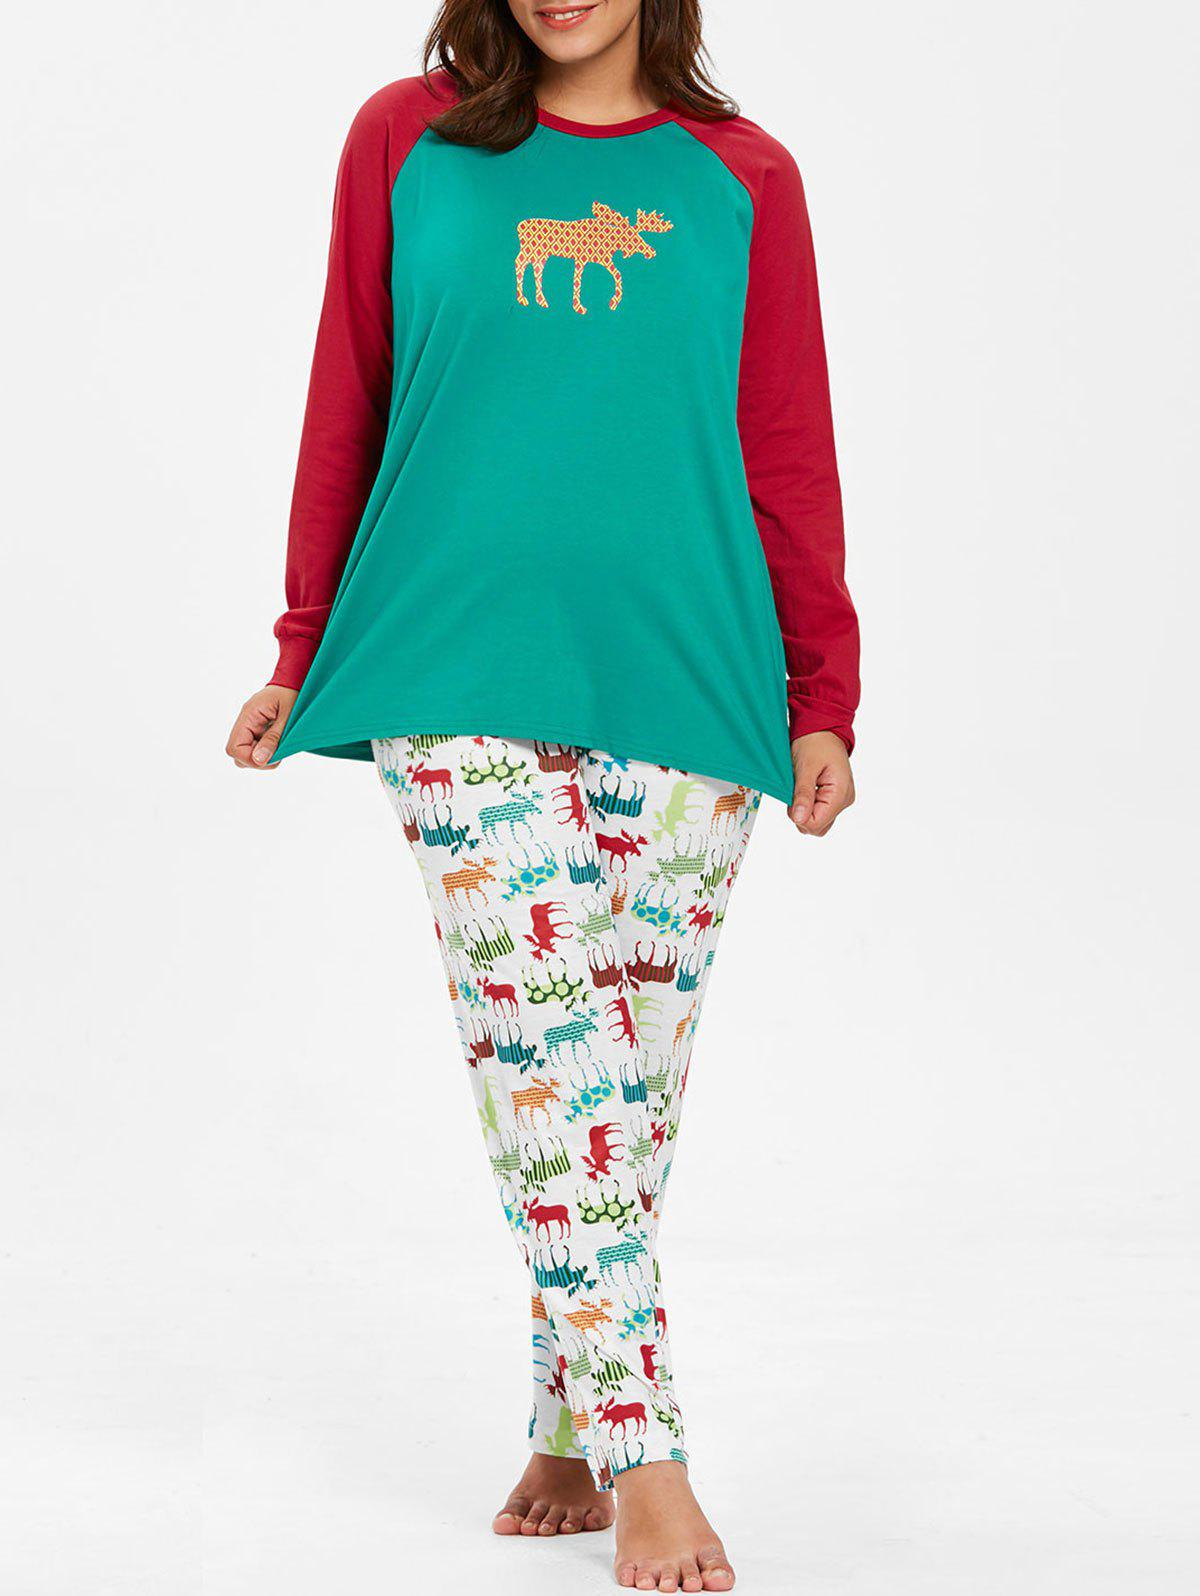 Plus Size Christmas Pajamas.Plus Size Christmas Reindeer Print Pajamas